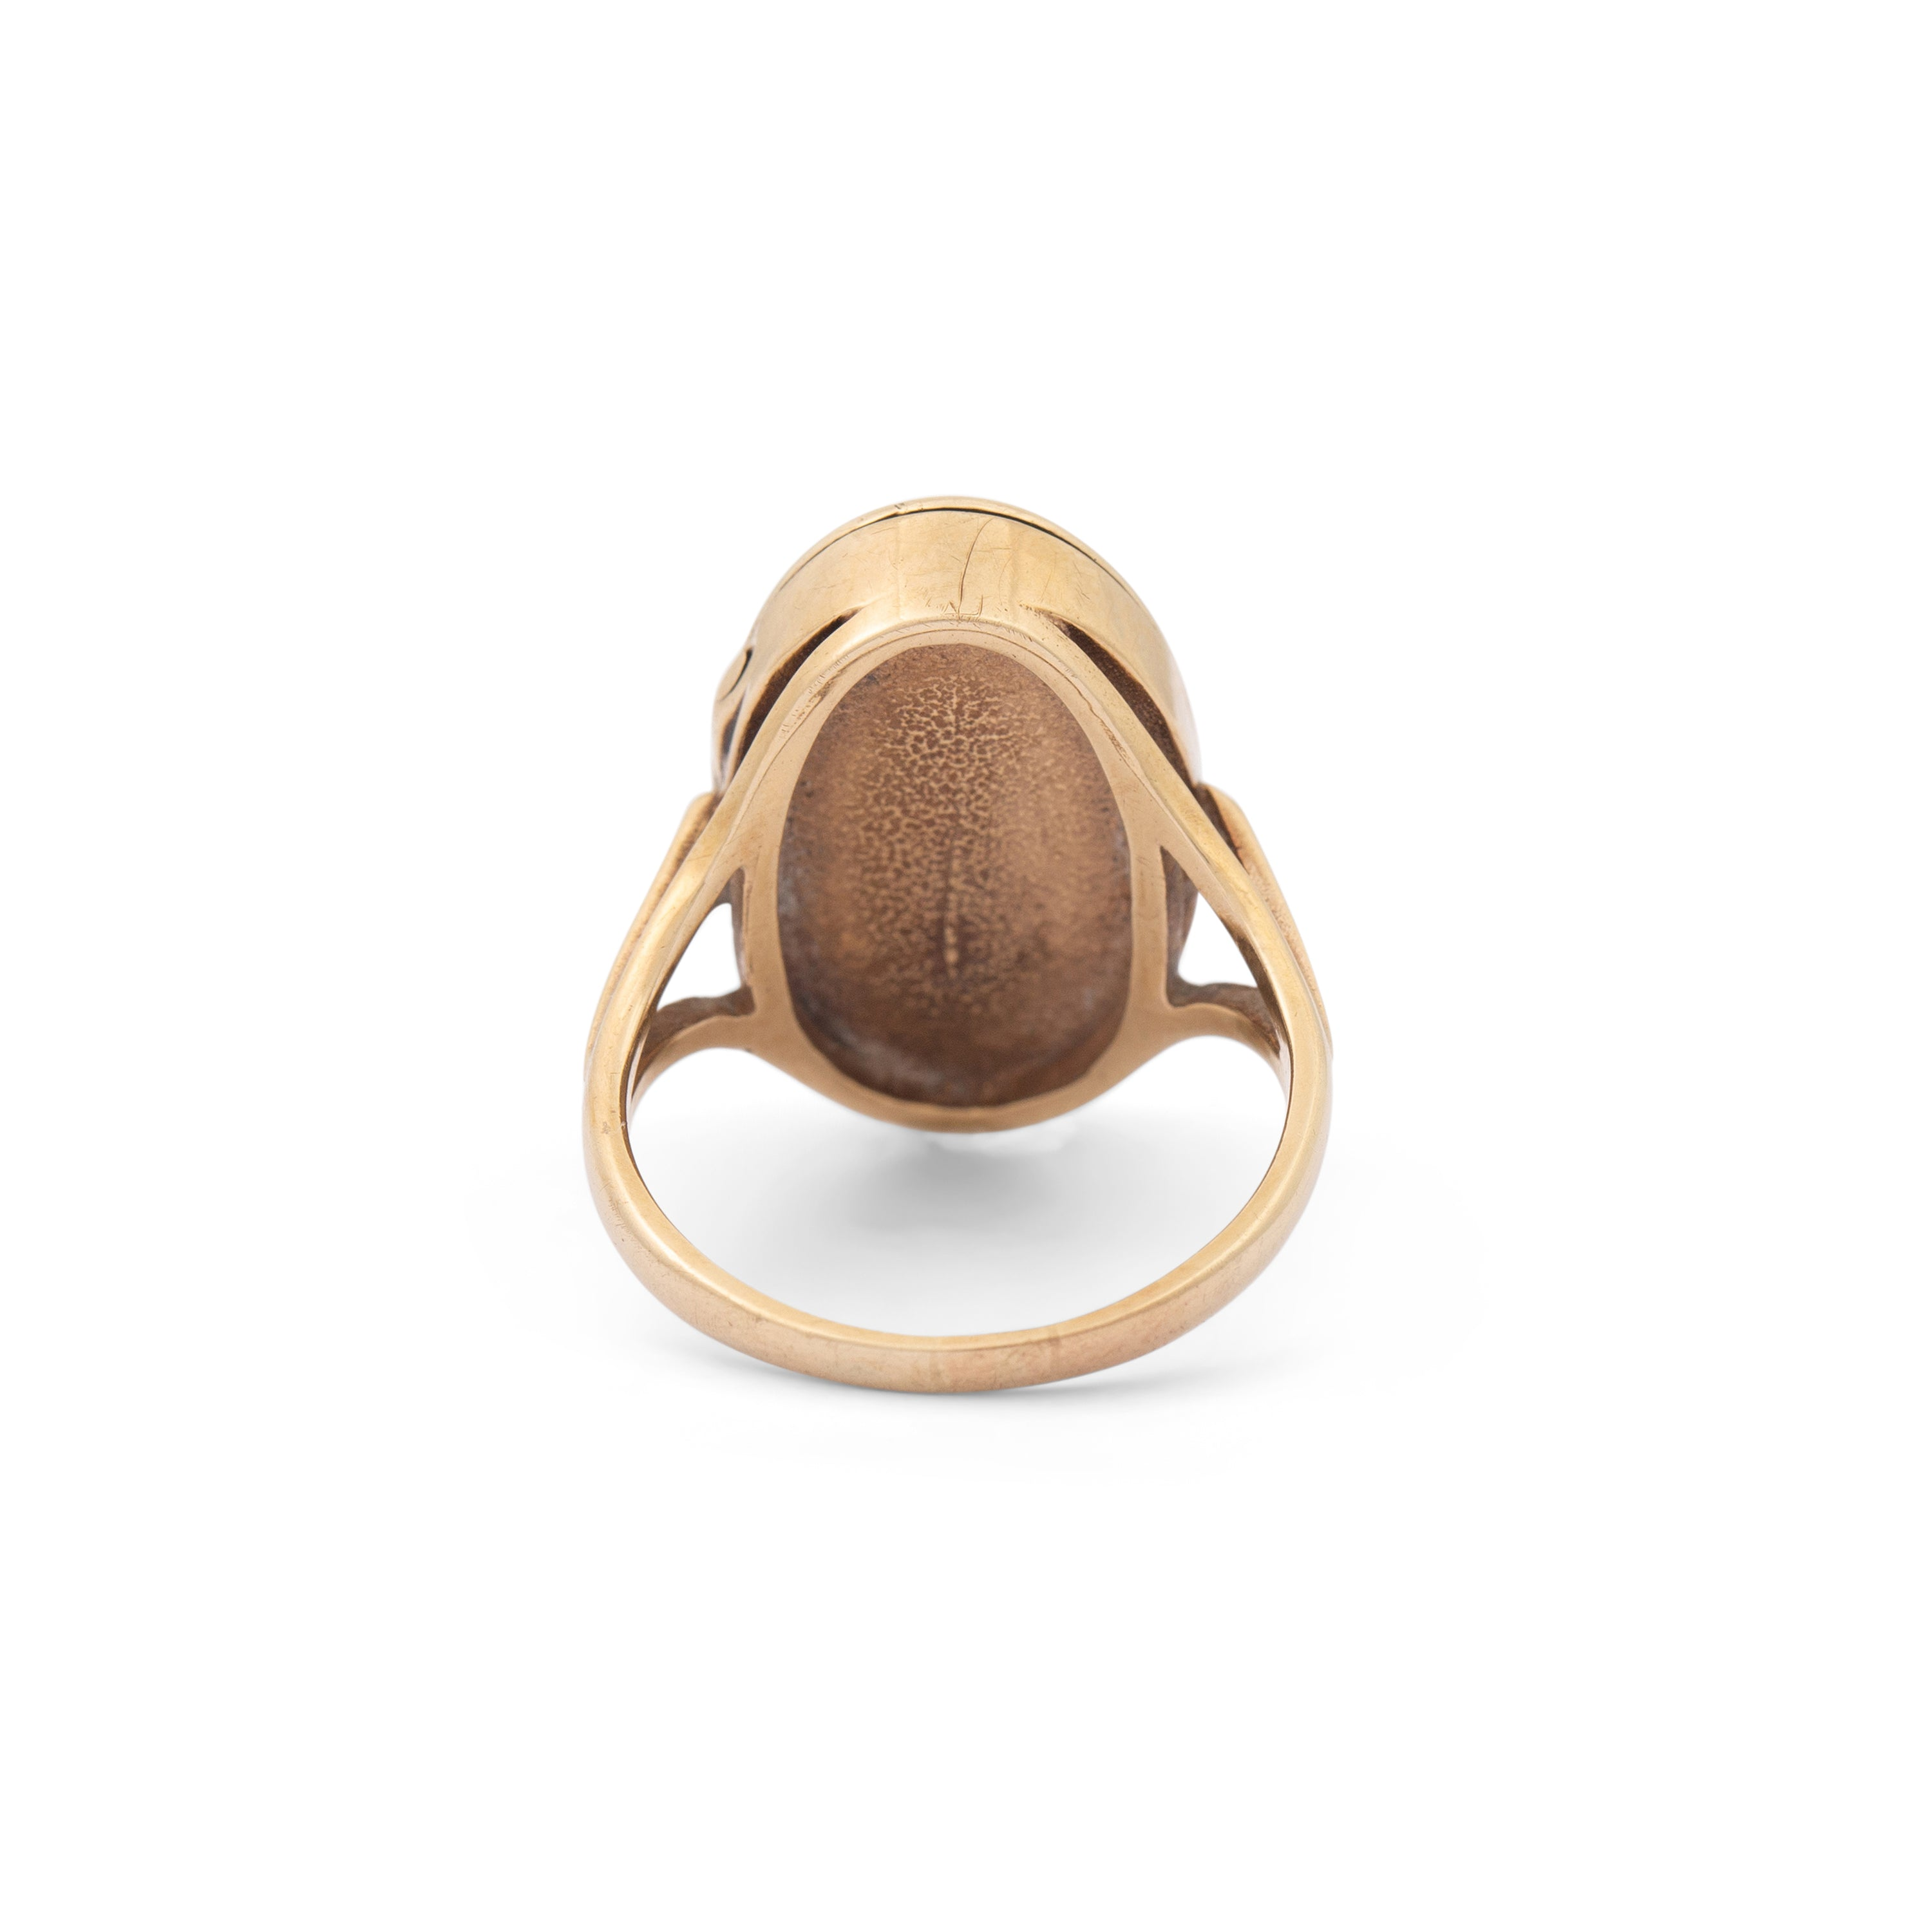 Oval 12K Gold Engraved Locket Ring